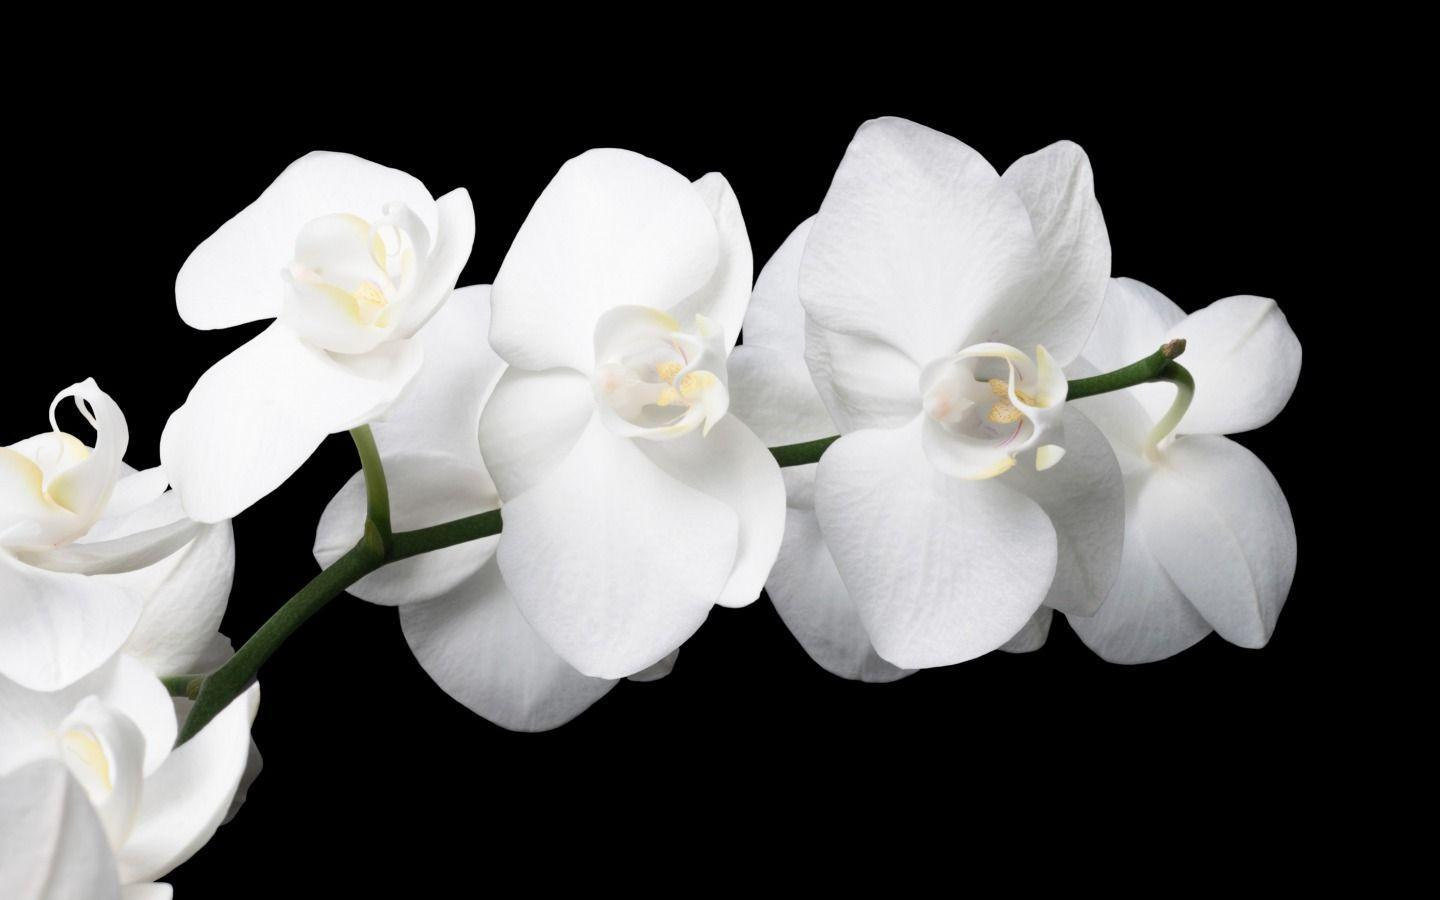 orchid wallpapers backgrounds images - photo #45